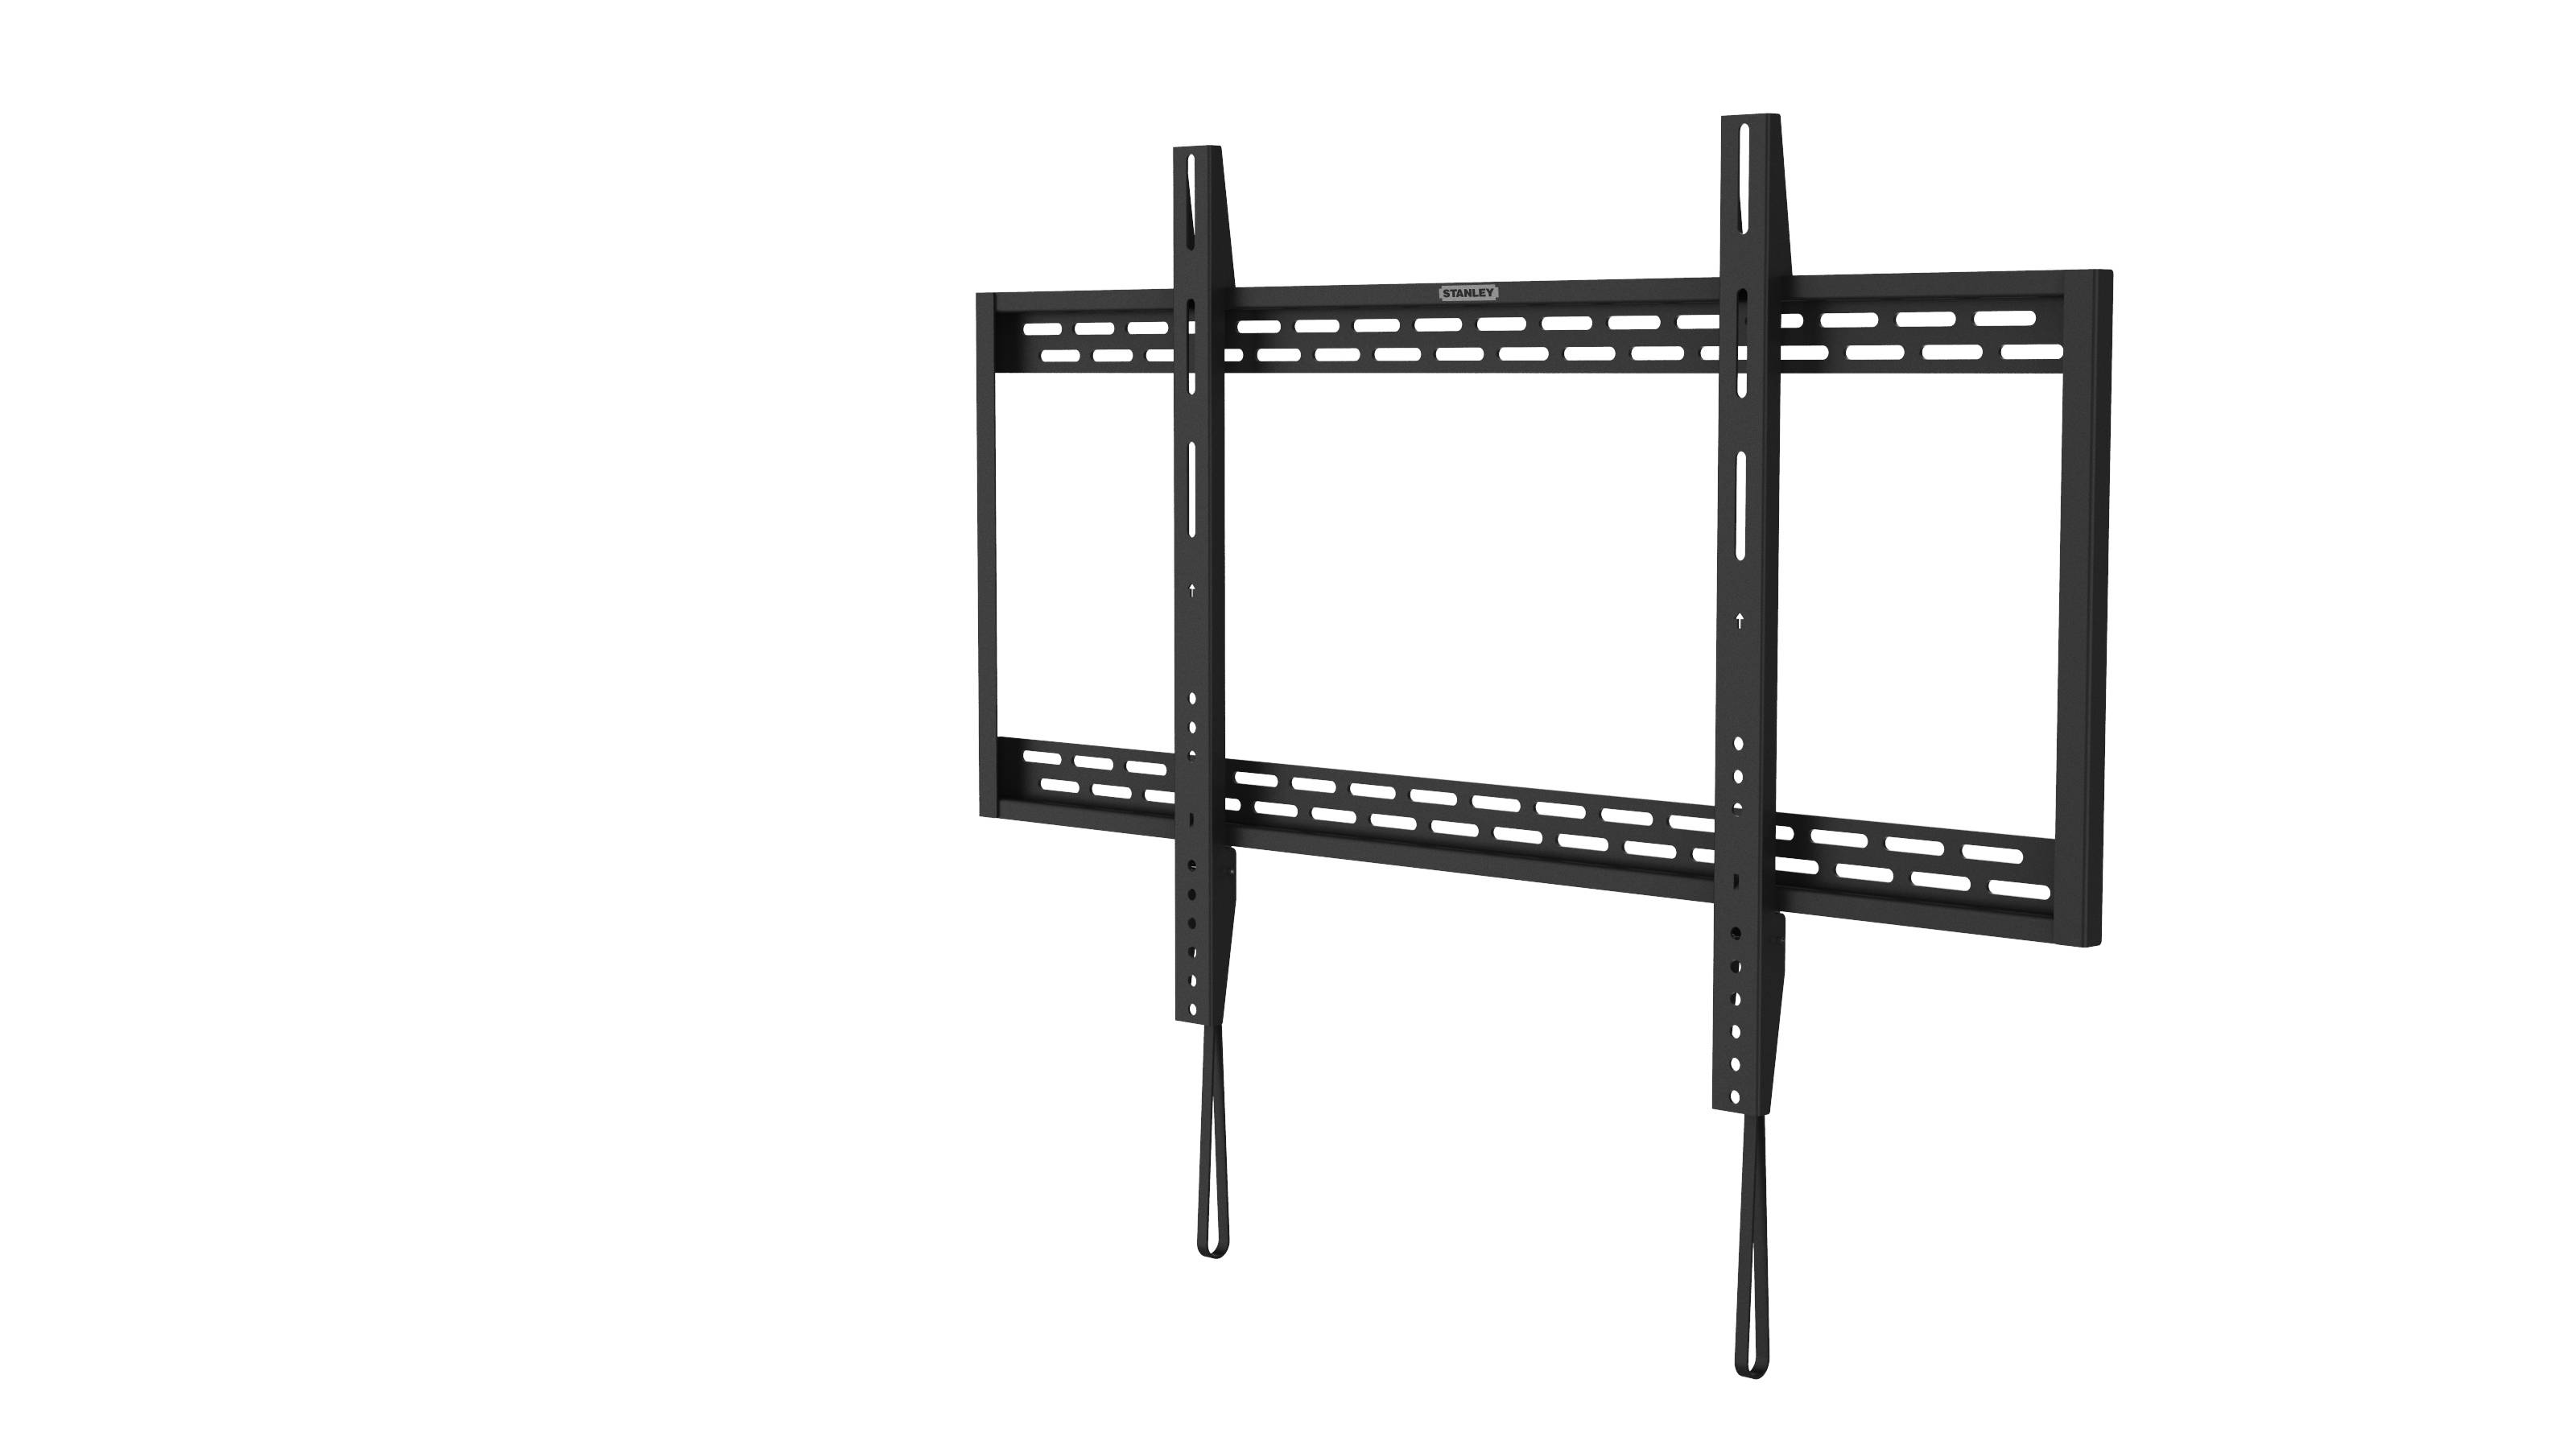 stanley tlx 105fm large full motion tv mount  37 quot  70 tv component shelves for the wall tv component shelves wall mount